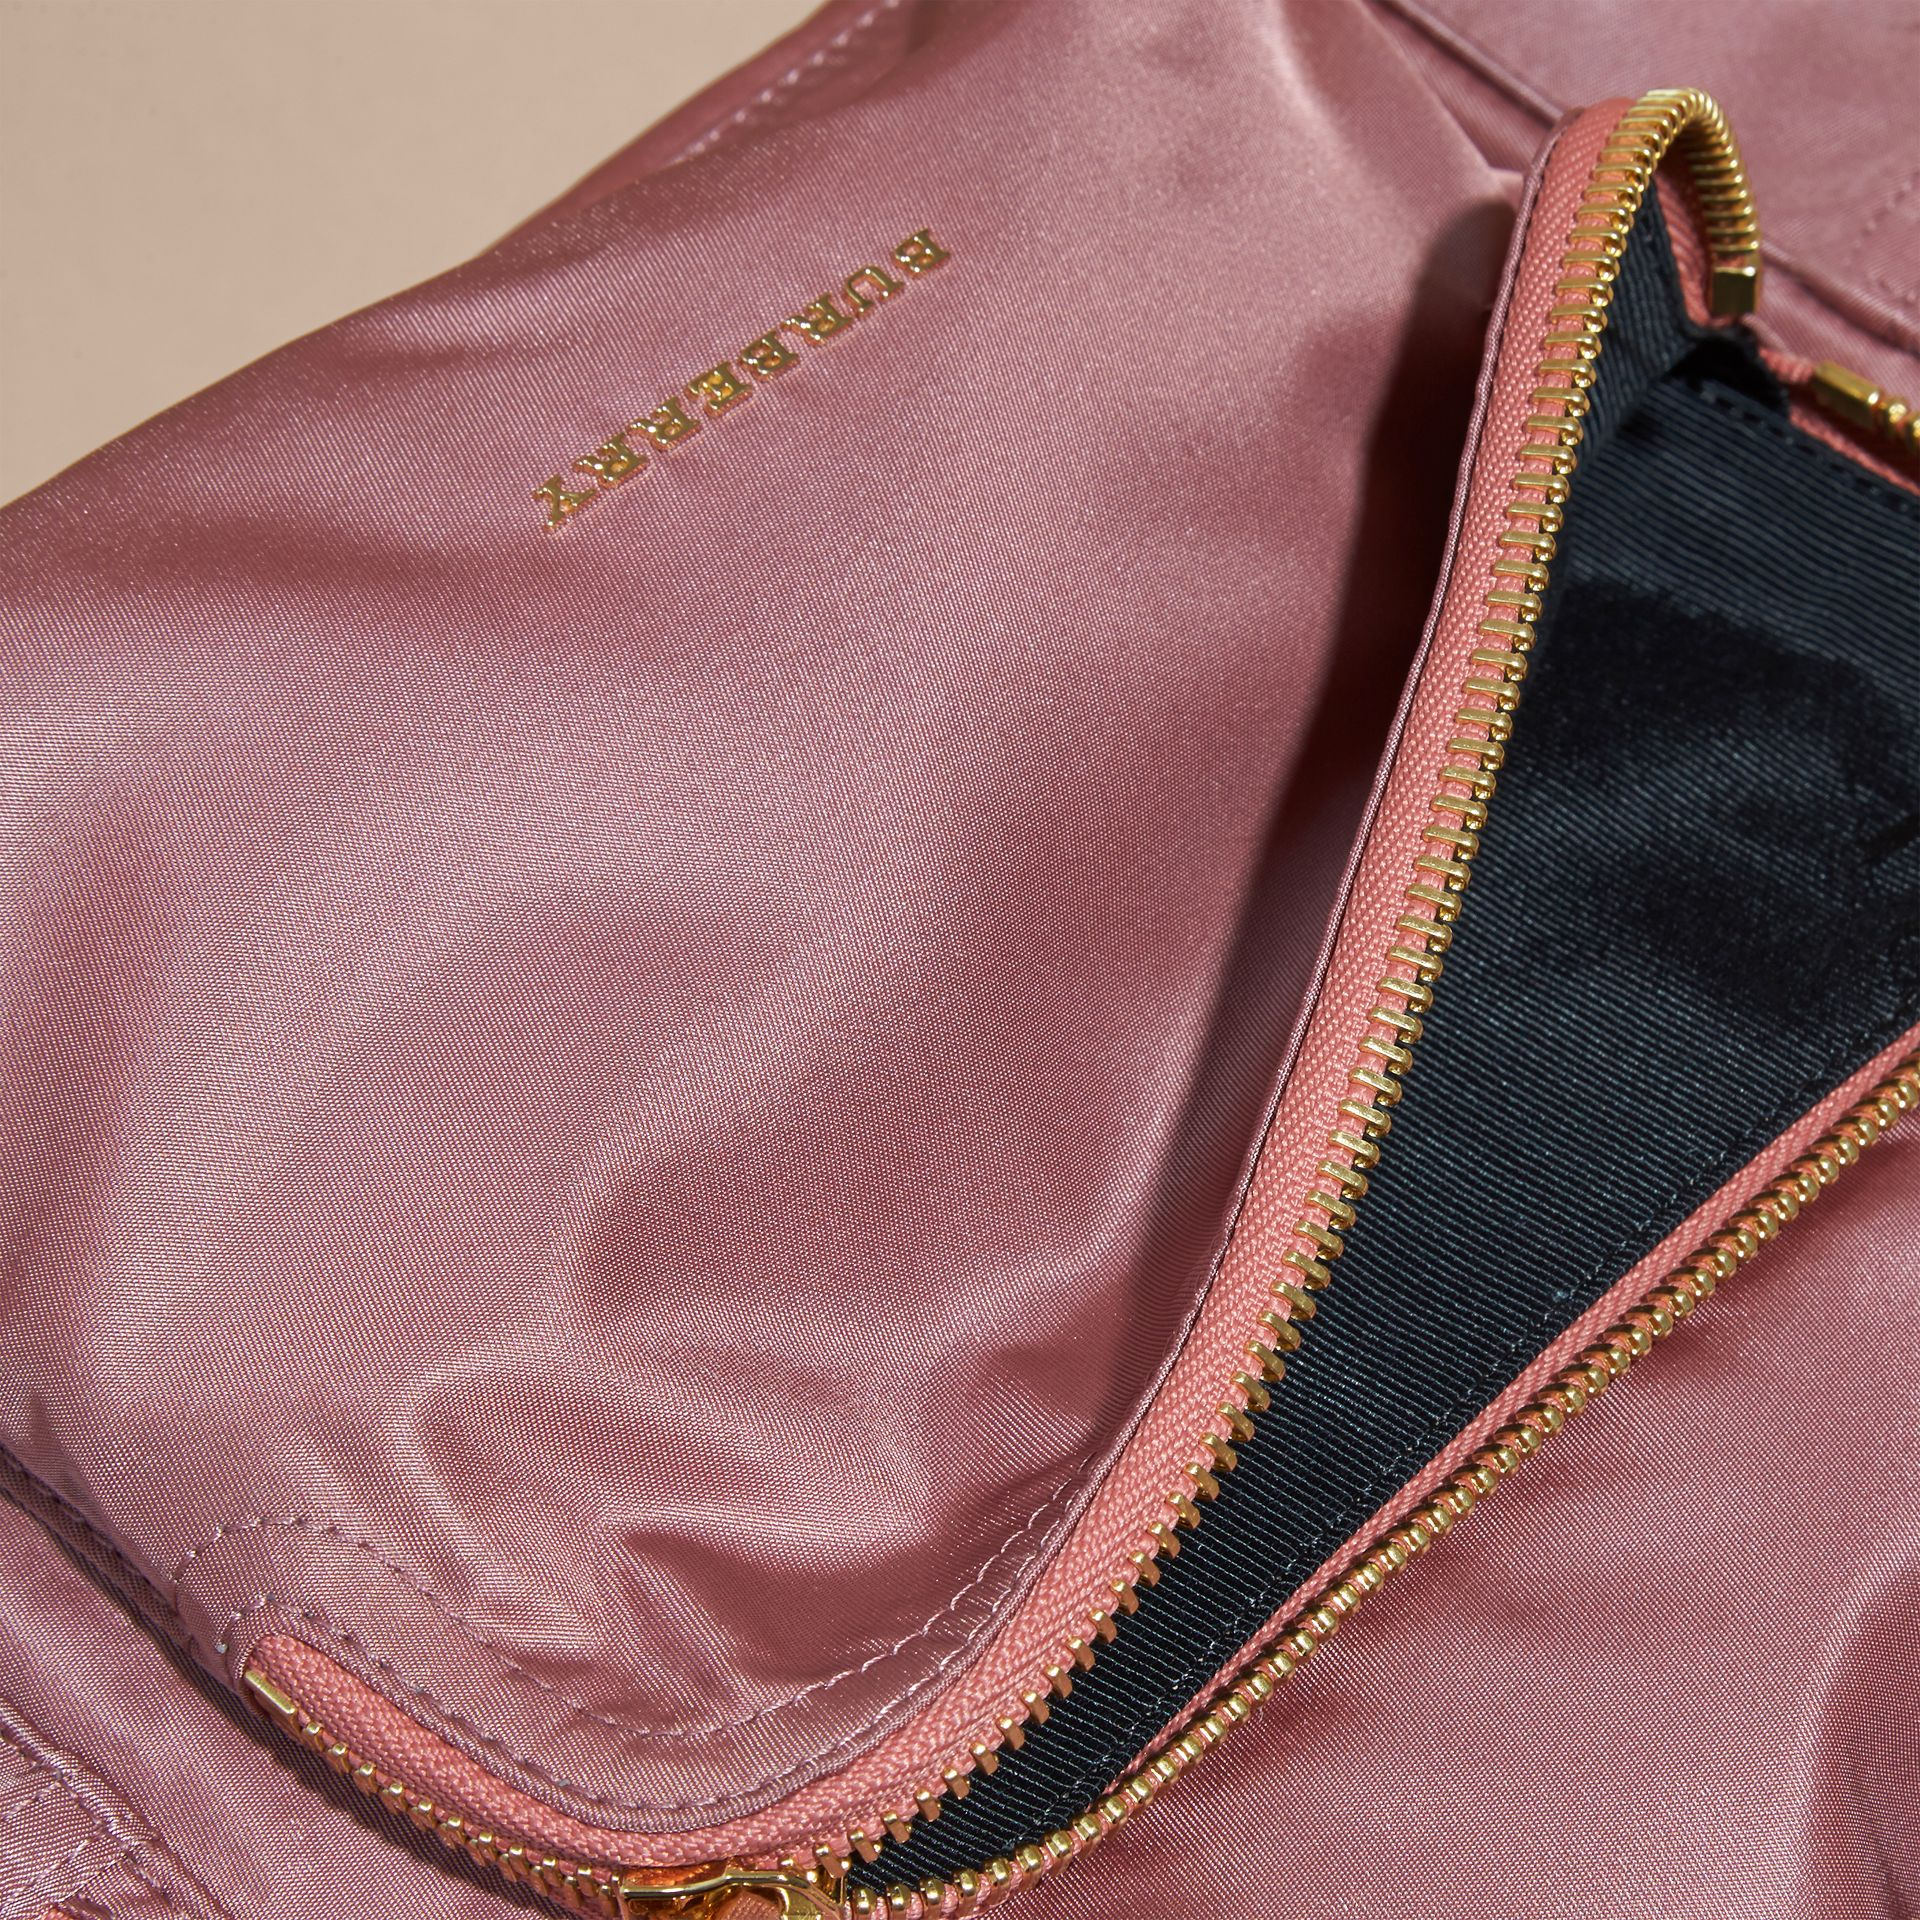 Mauve pink The Medium Rucksack in Technical Nylon and Leather Mauve Pink - gallery image 6